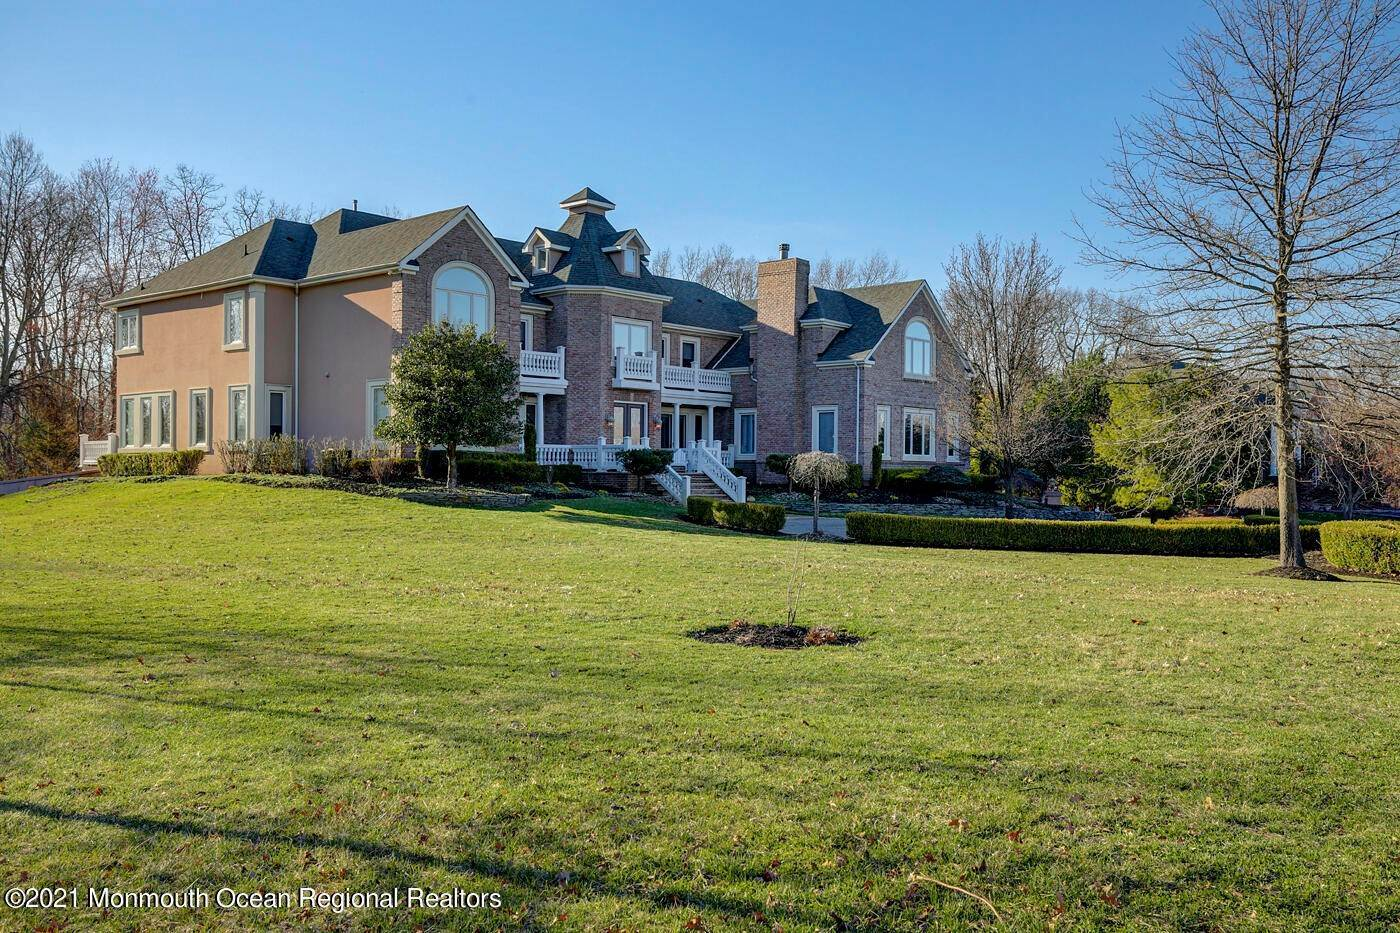 Single Family Homes for Sale at 3 Fulling Mill Lane Colts Neck, New Jersey 07722 United States